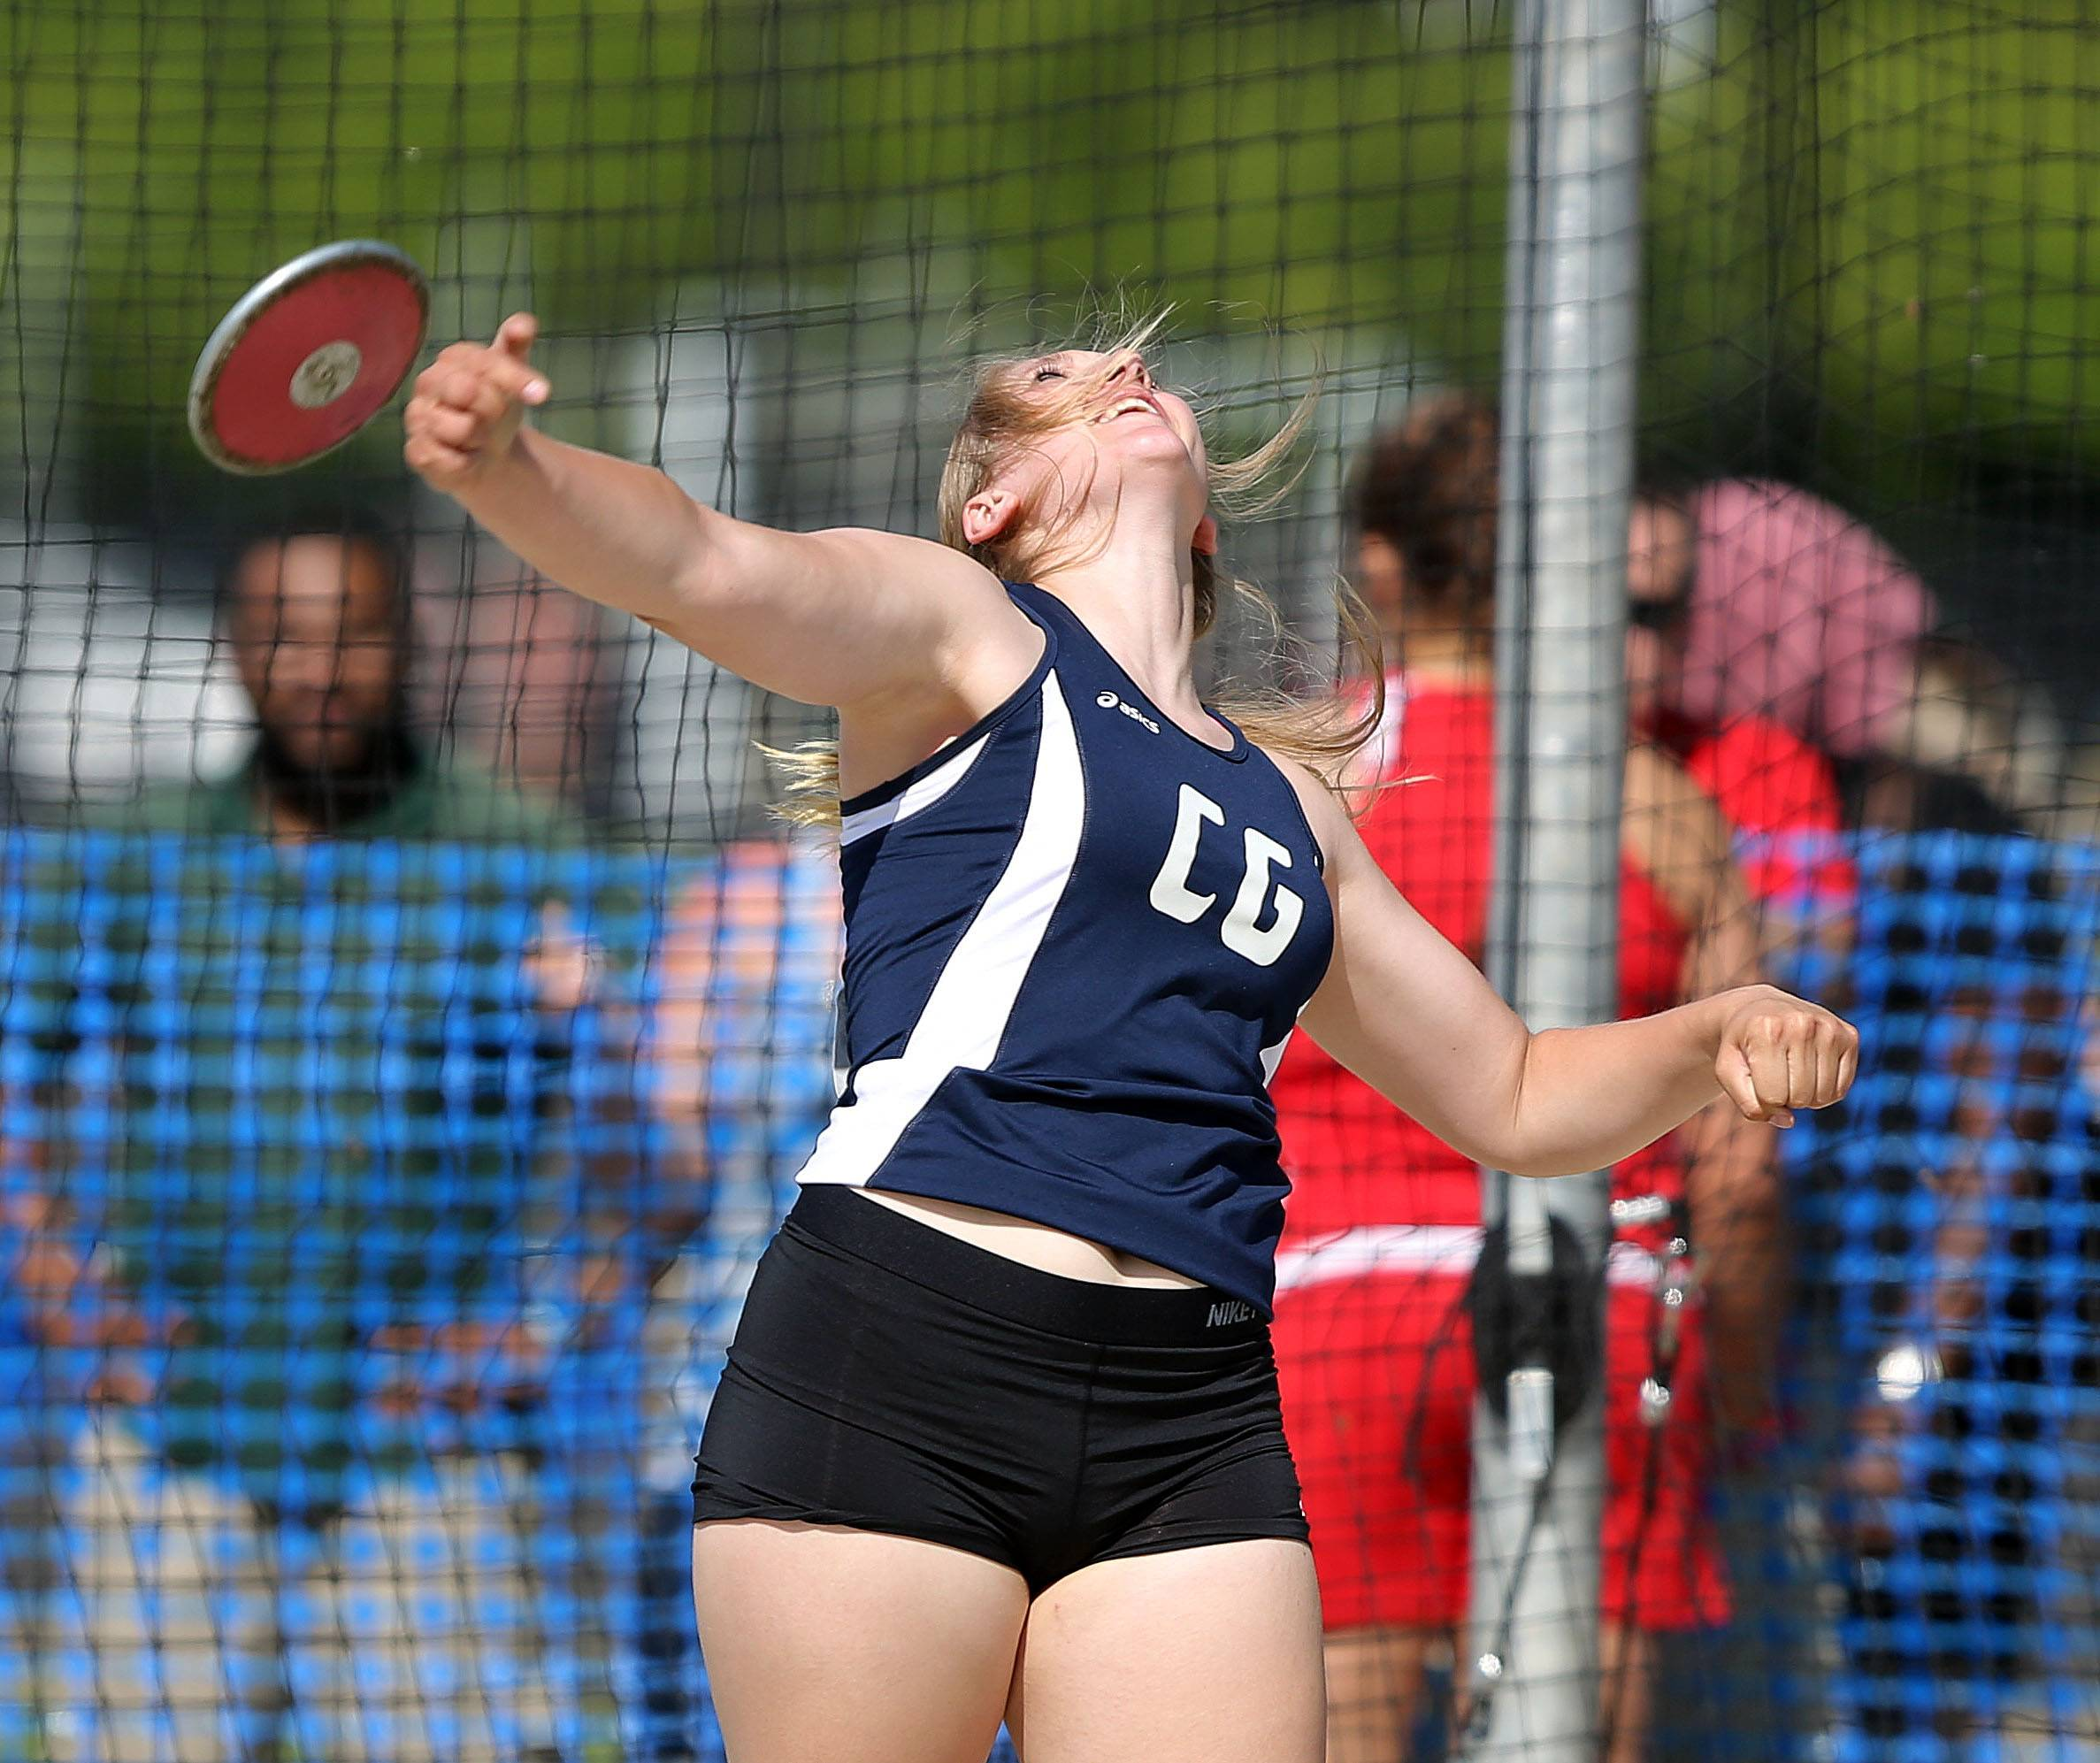 Cary-Grove's Nikki Freeman competes in the discus during the prelims of the girls track and field state meet at Eastern Illinois University in Charleston Friday.